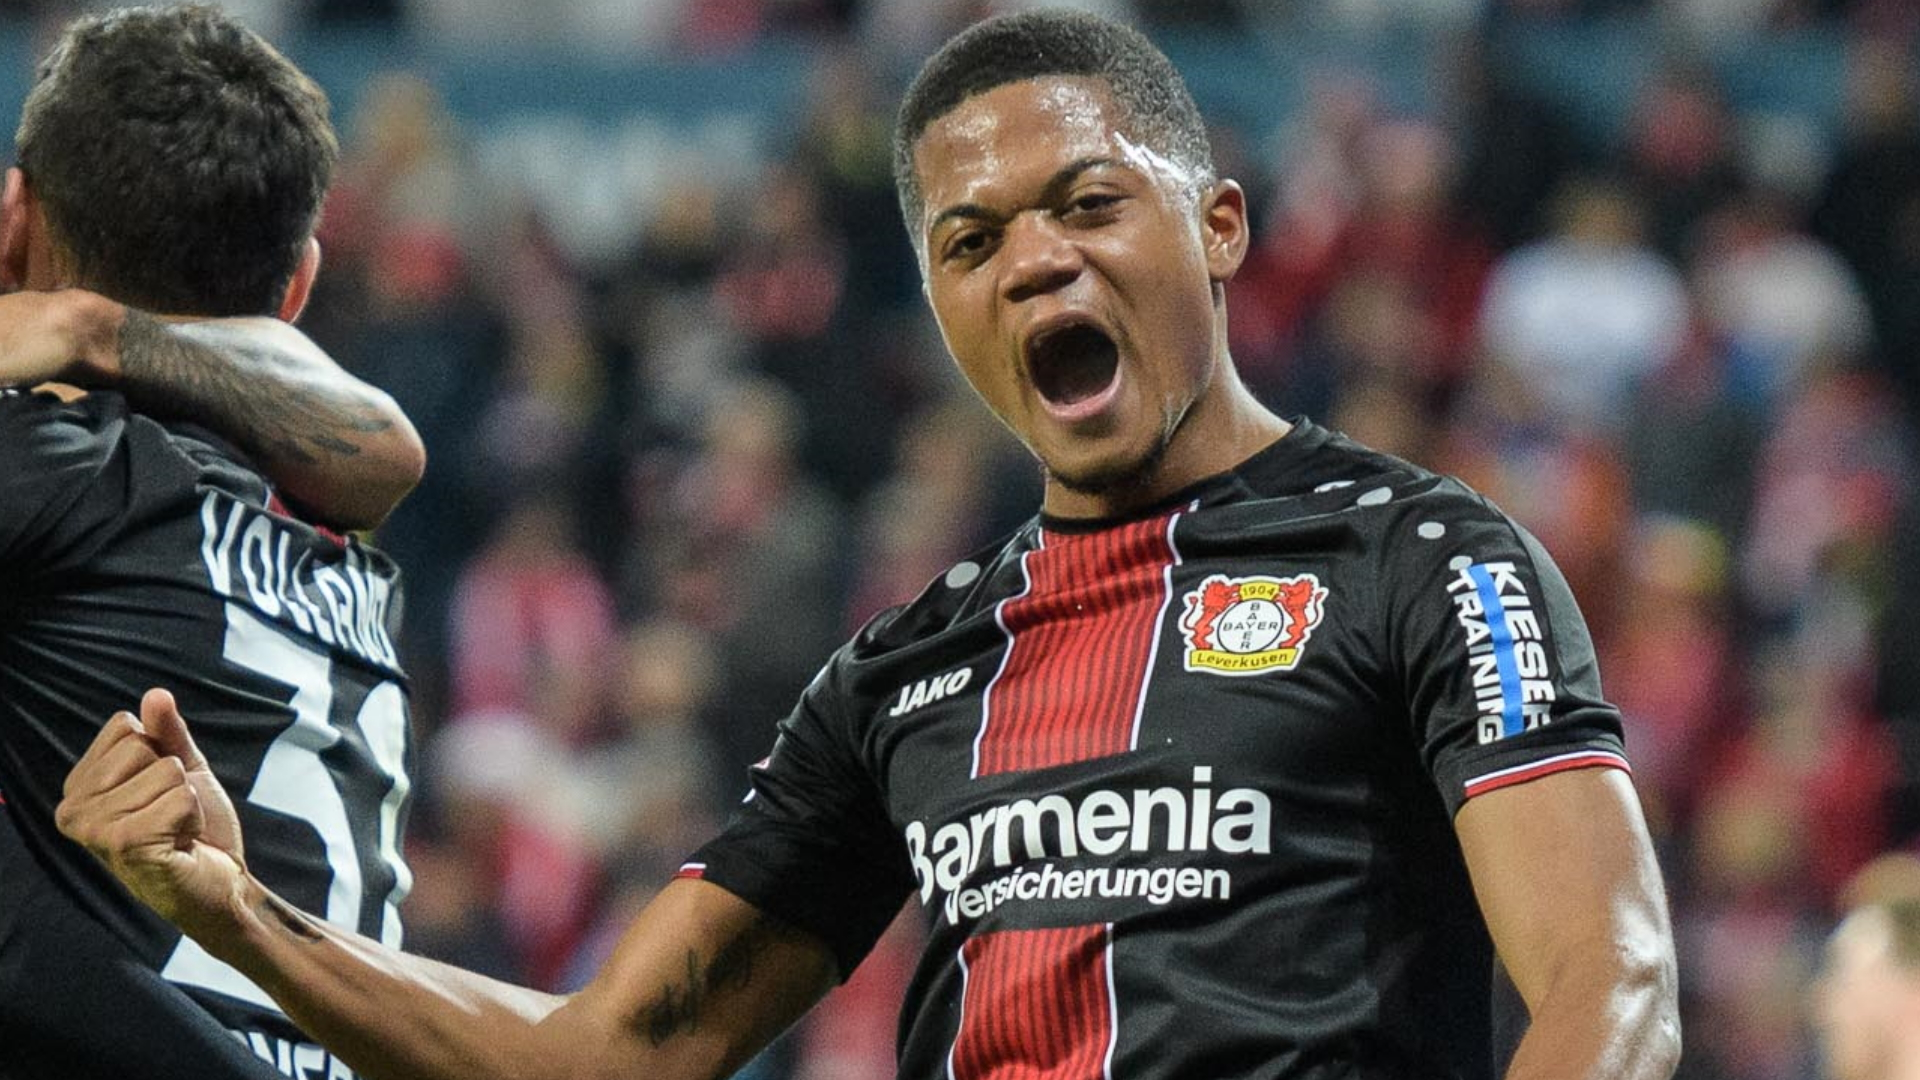 Transfer news and rumours LIVE: Man City target Bailey as Sane replacement